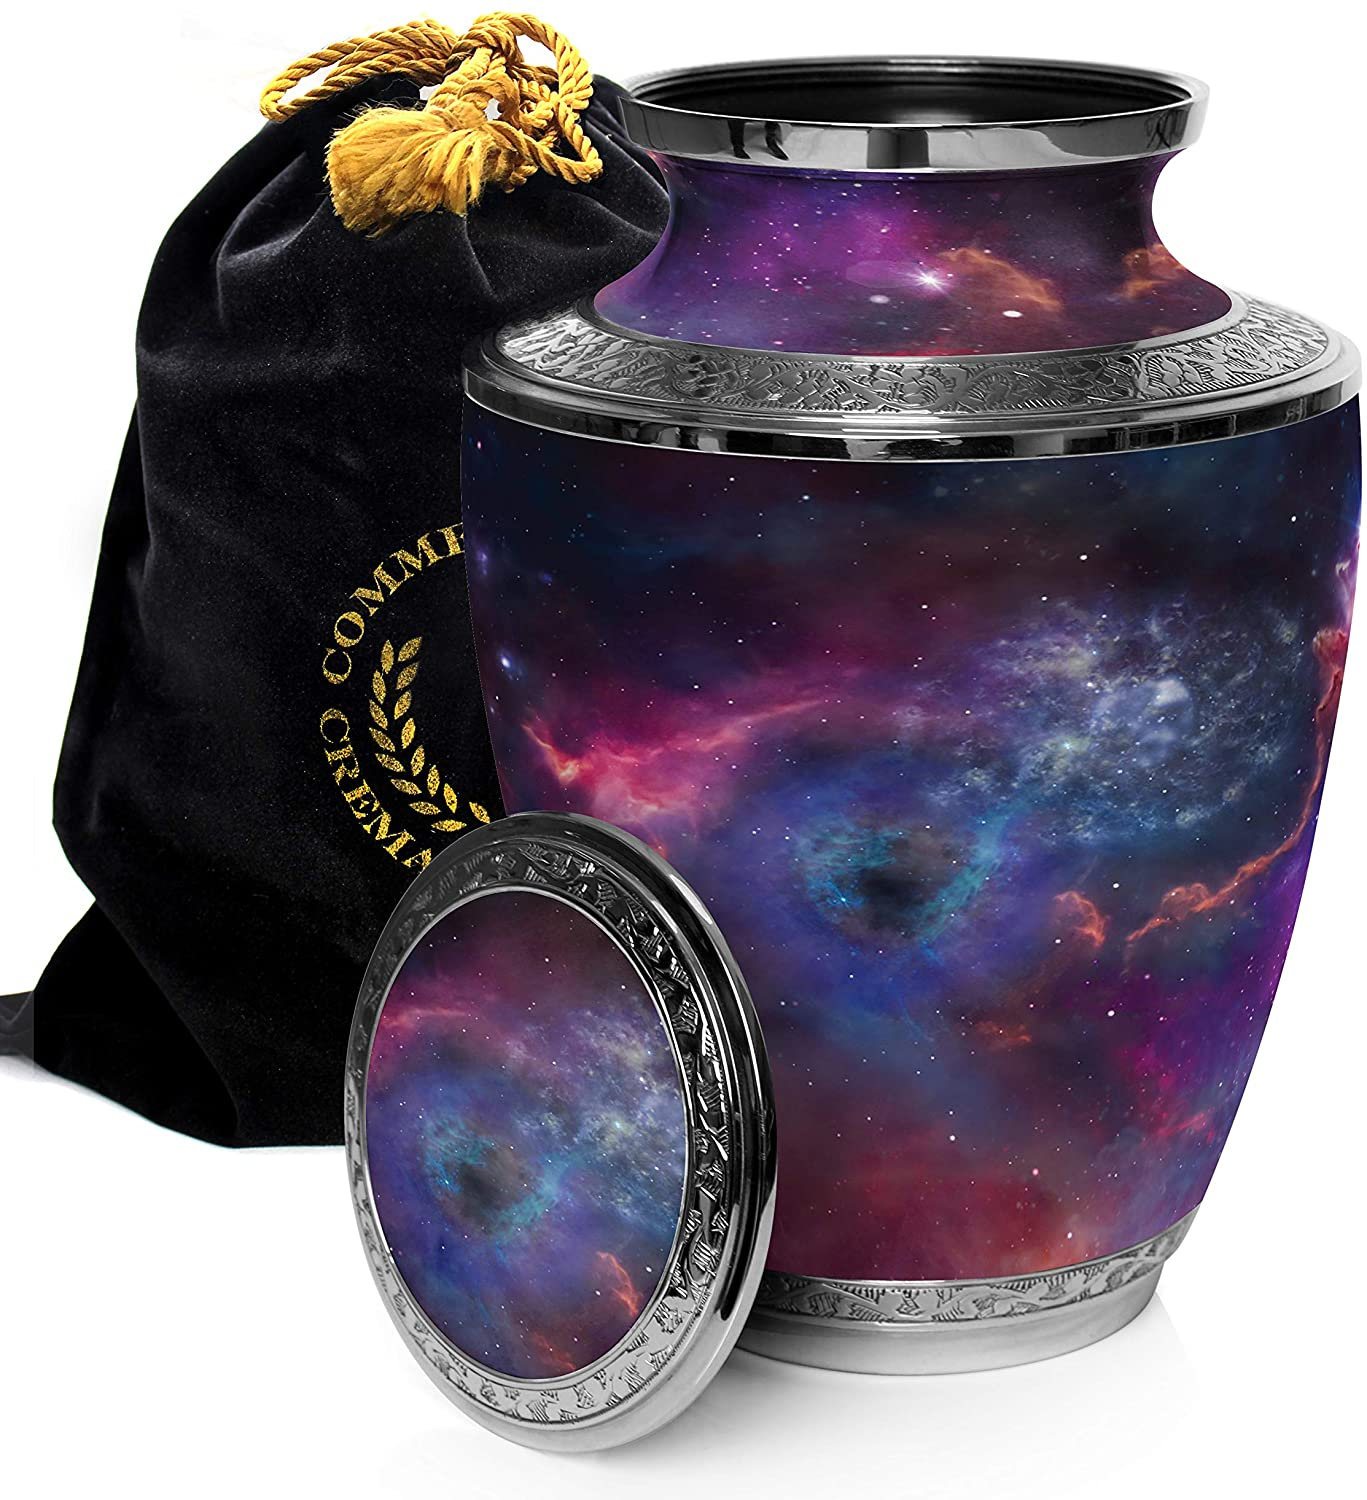 Cosmic Galaxy Universe Cremation Urns for Adult Ashes for Funeral, Niche or Columbarium, 100% Brass, Cremation Urns for Human Ashes Adult 200 Cubic inches (Interstellar Nebula, Large)